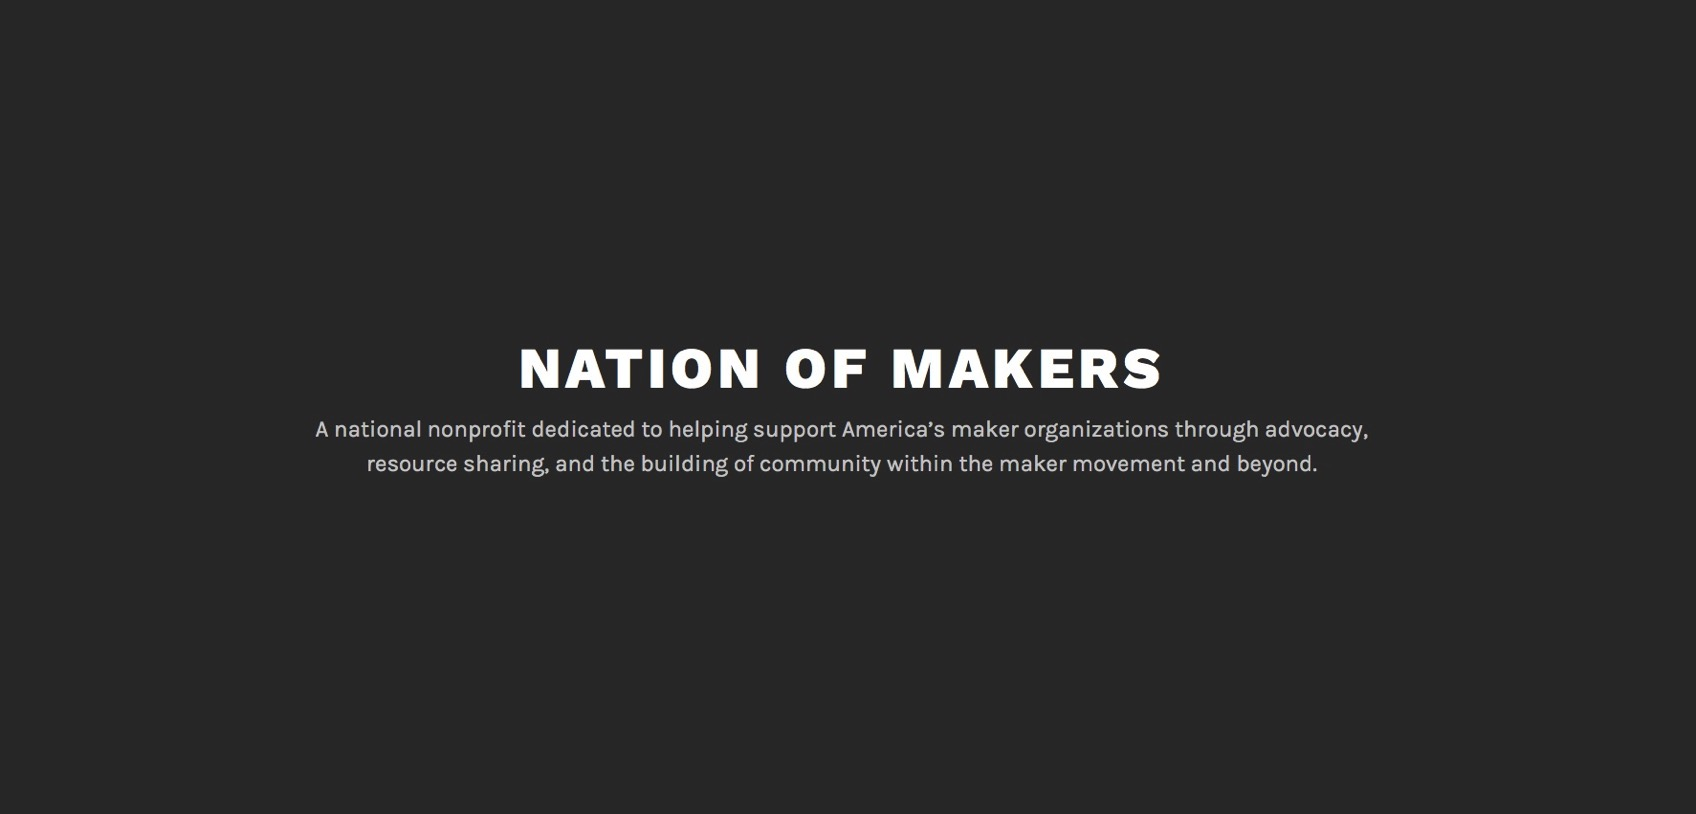 Mission Vision Nation of Makers